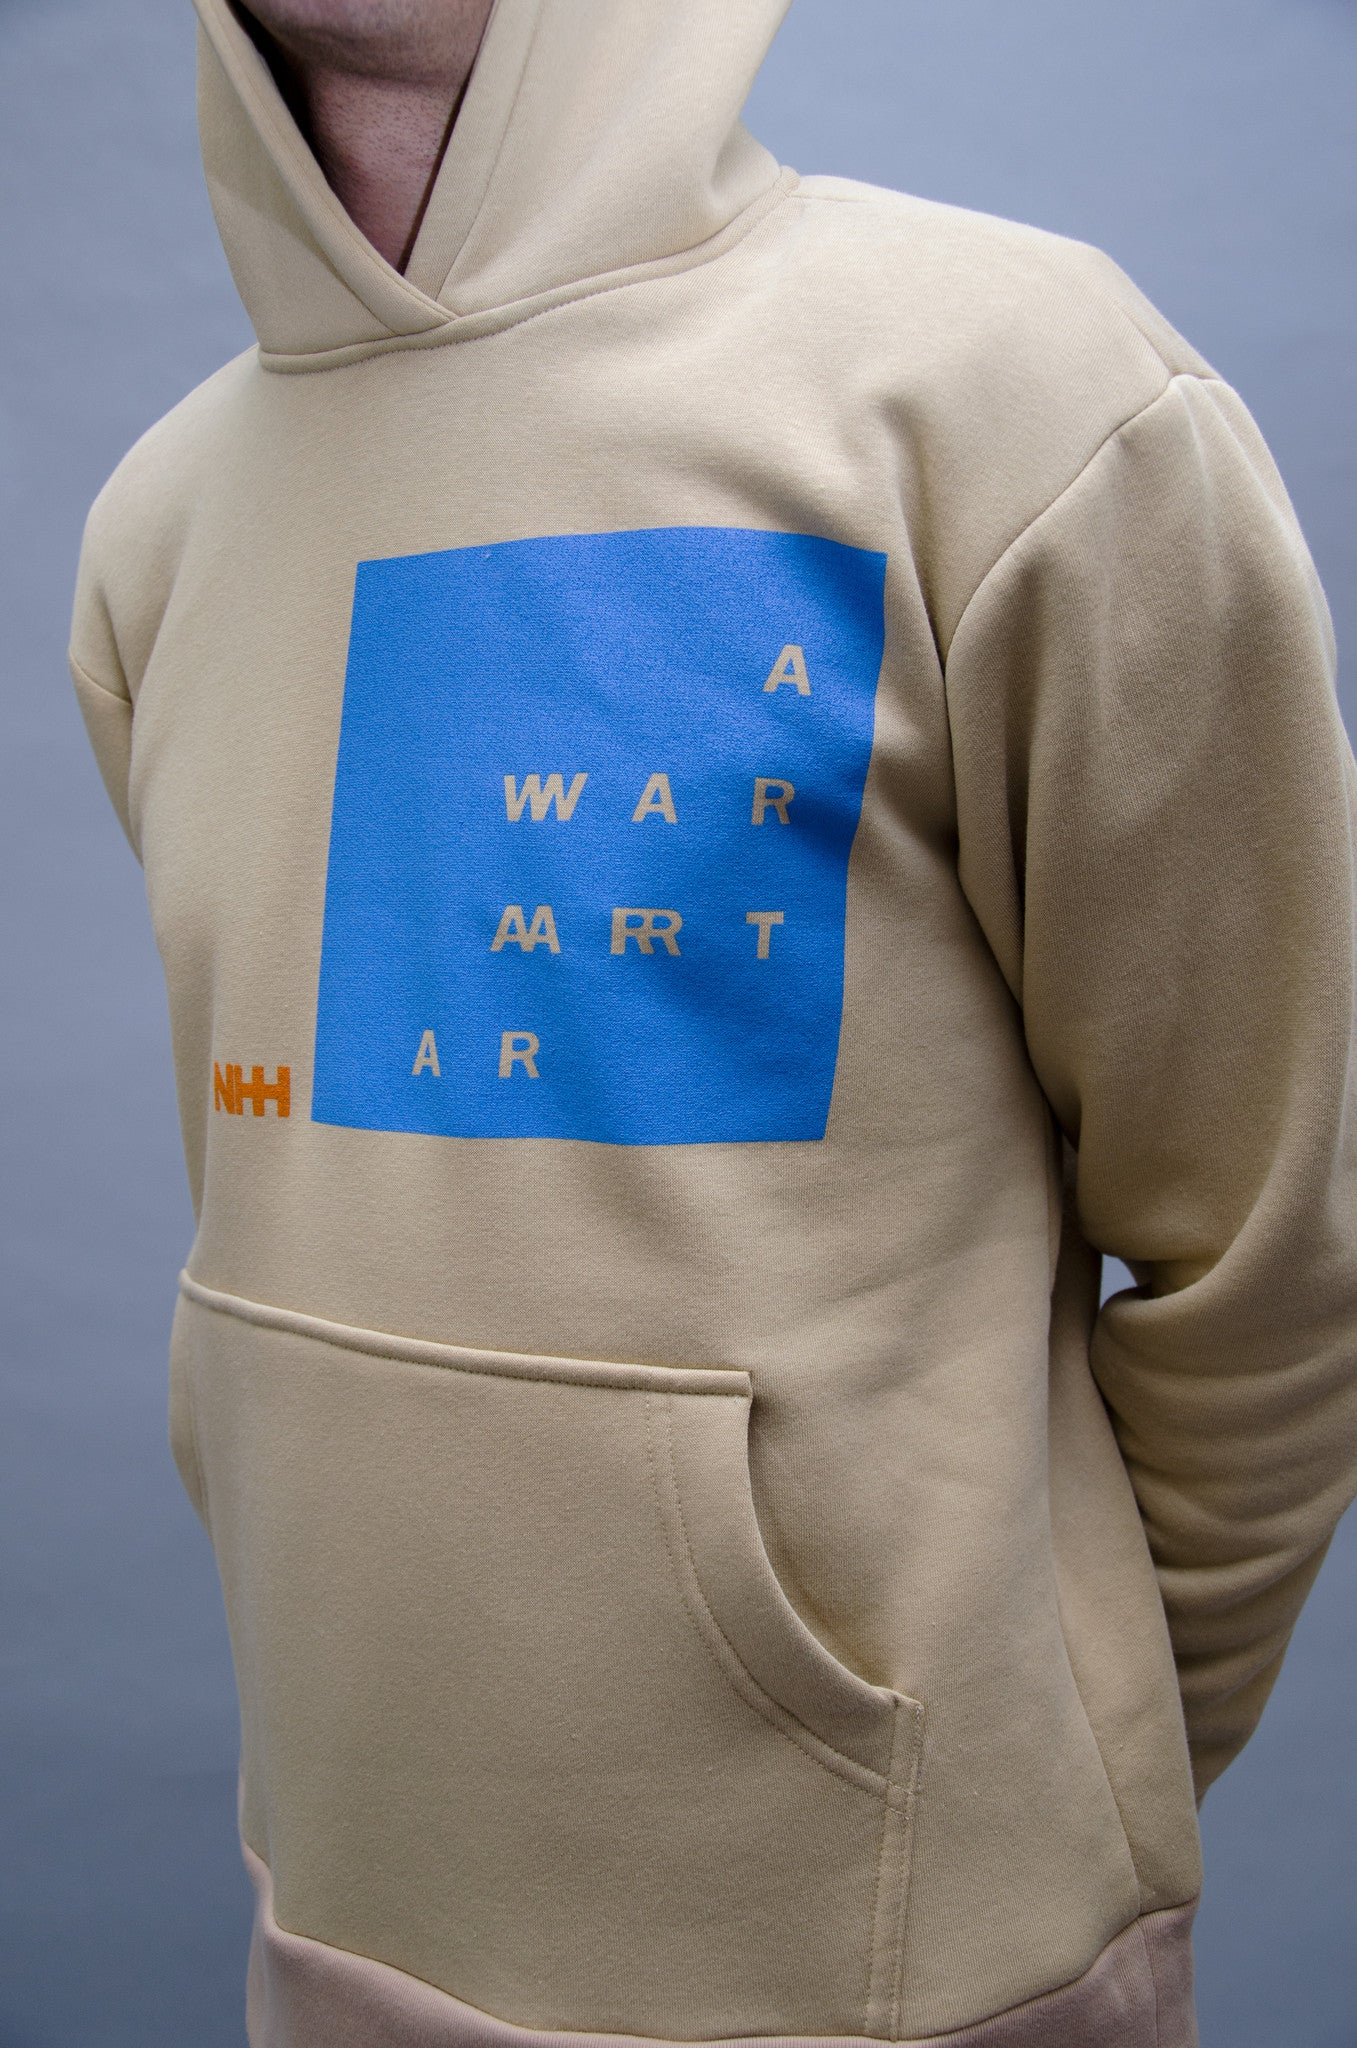 The North Hill Two-tone Warrior Hoodie is a made in France sweatshirt